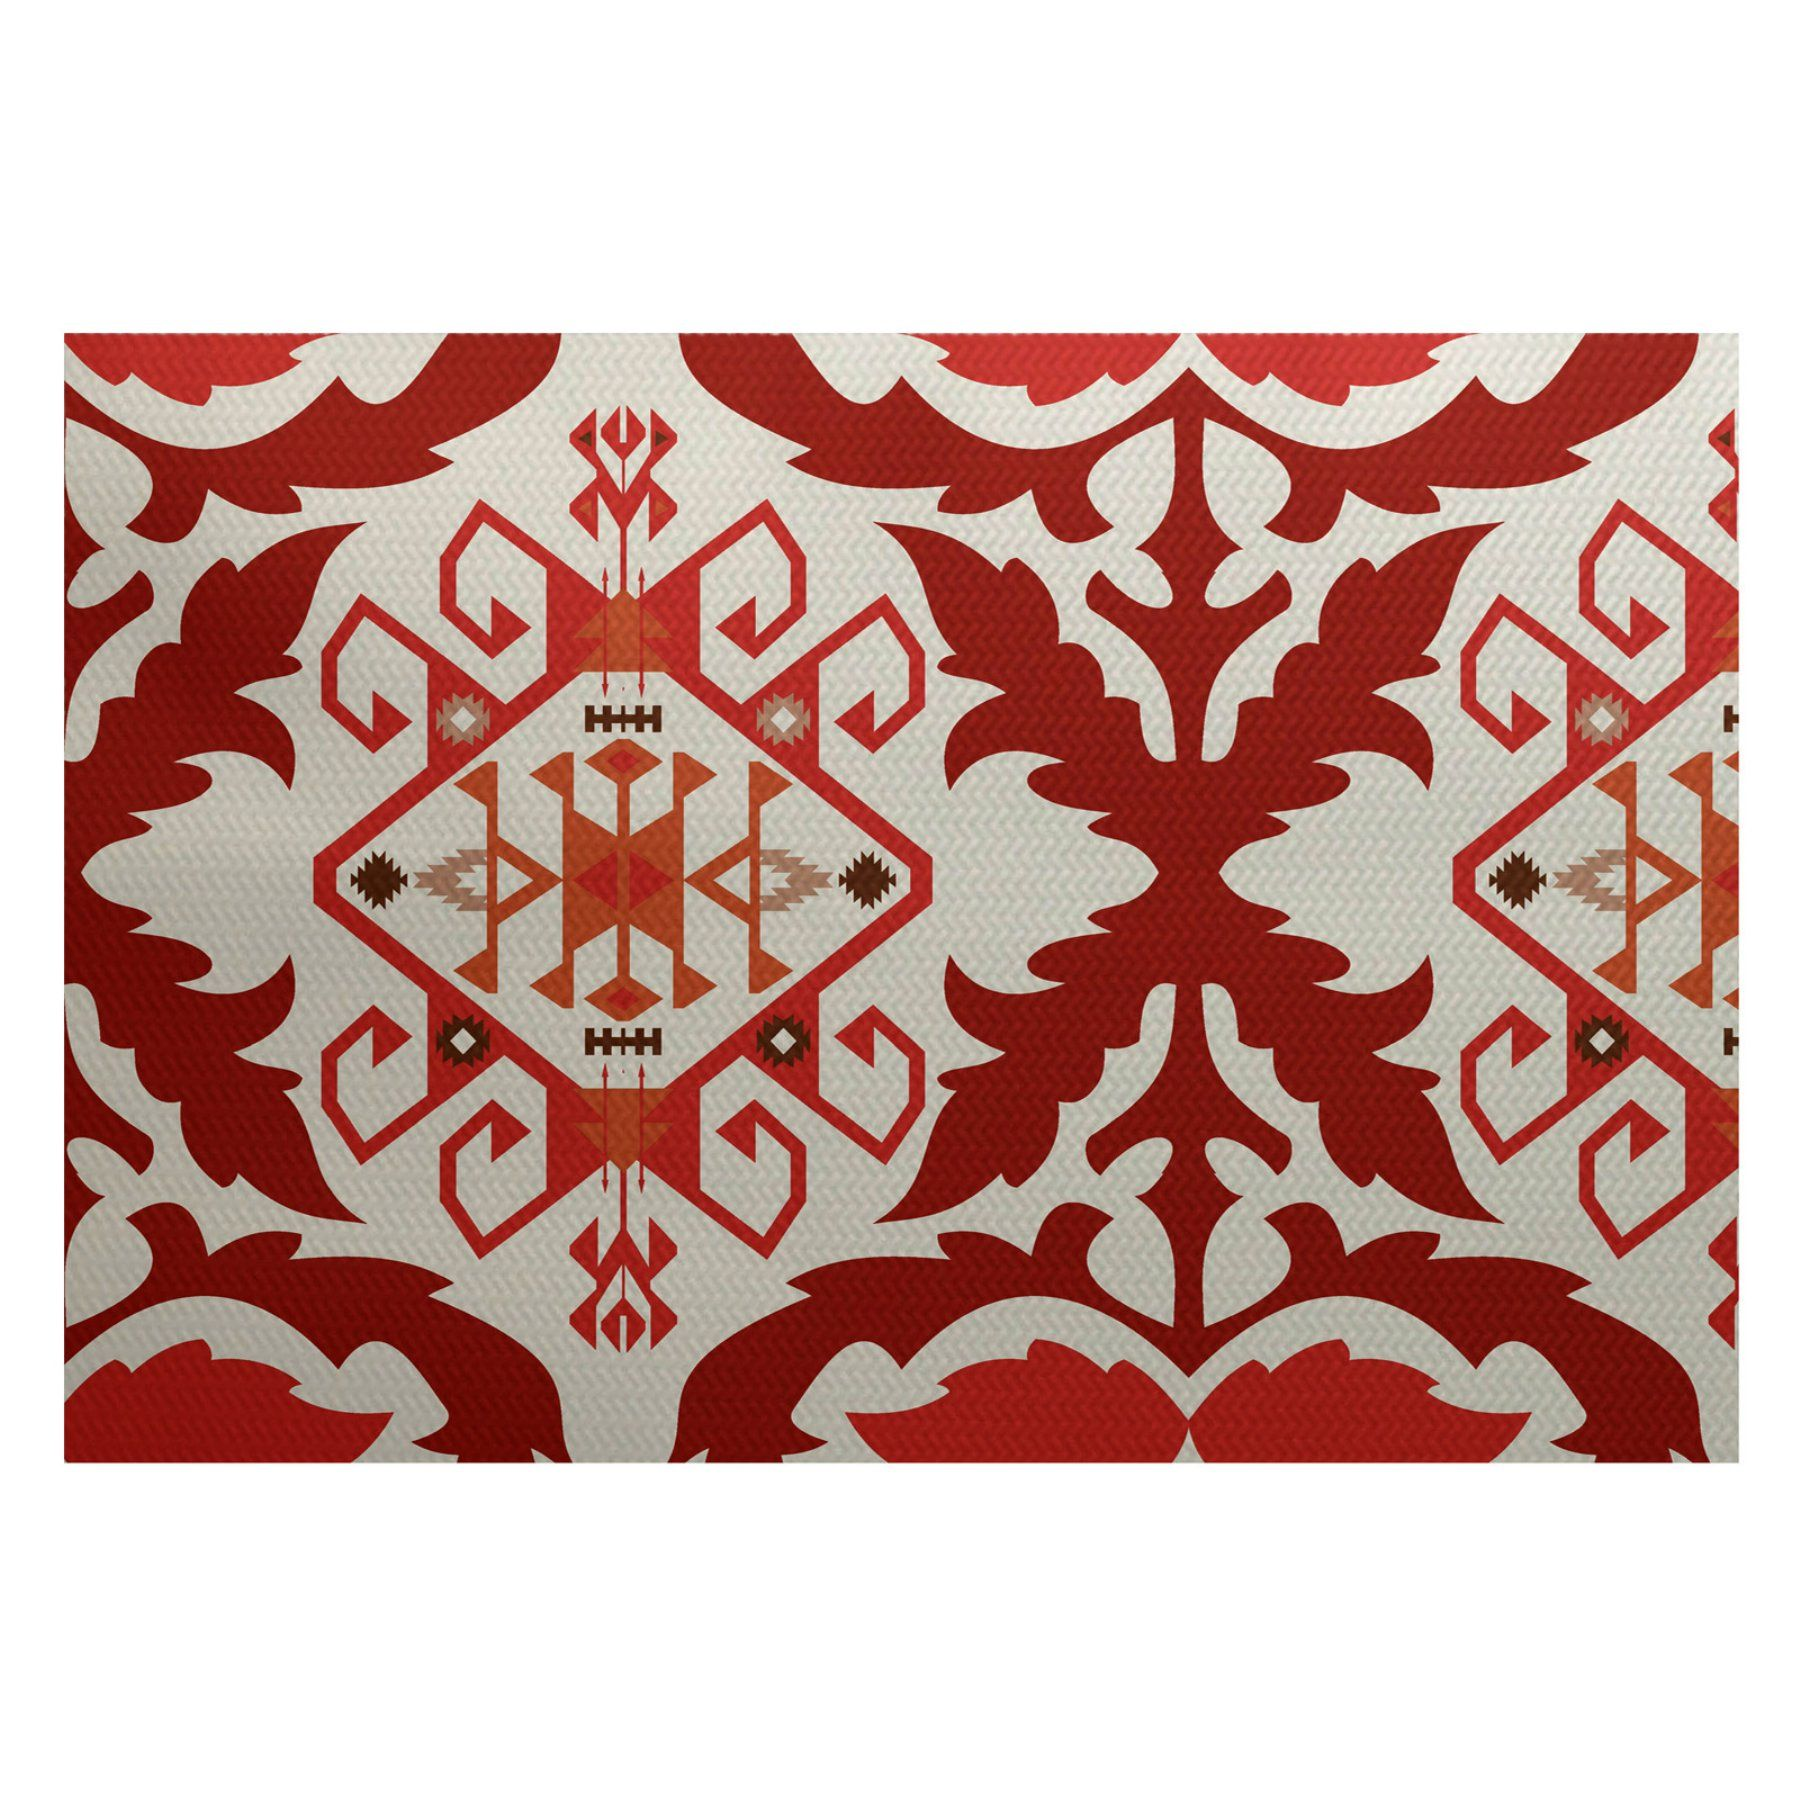 E By Design Bombay 6 Indooroutdoor Area Rug  Rgn730Bl38 23